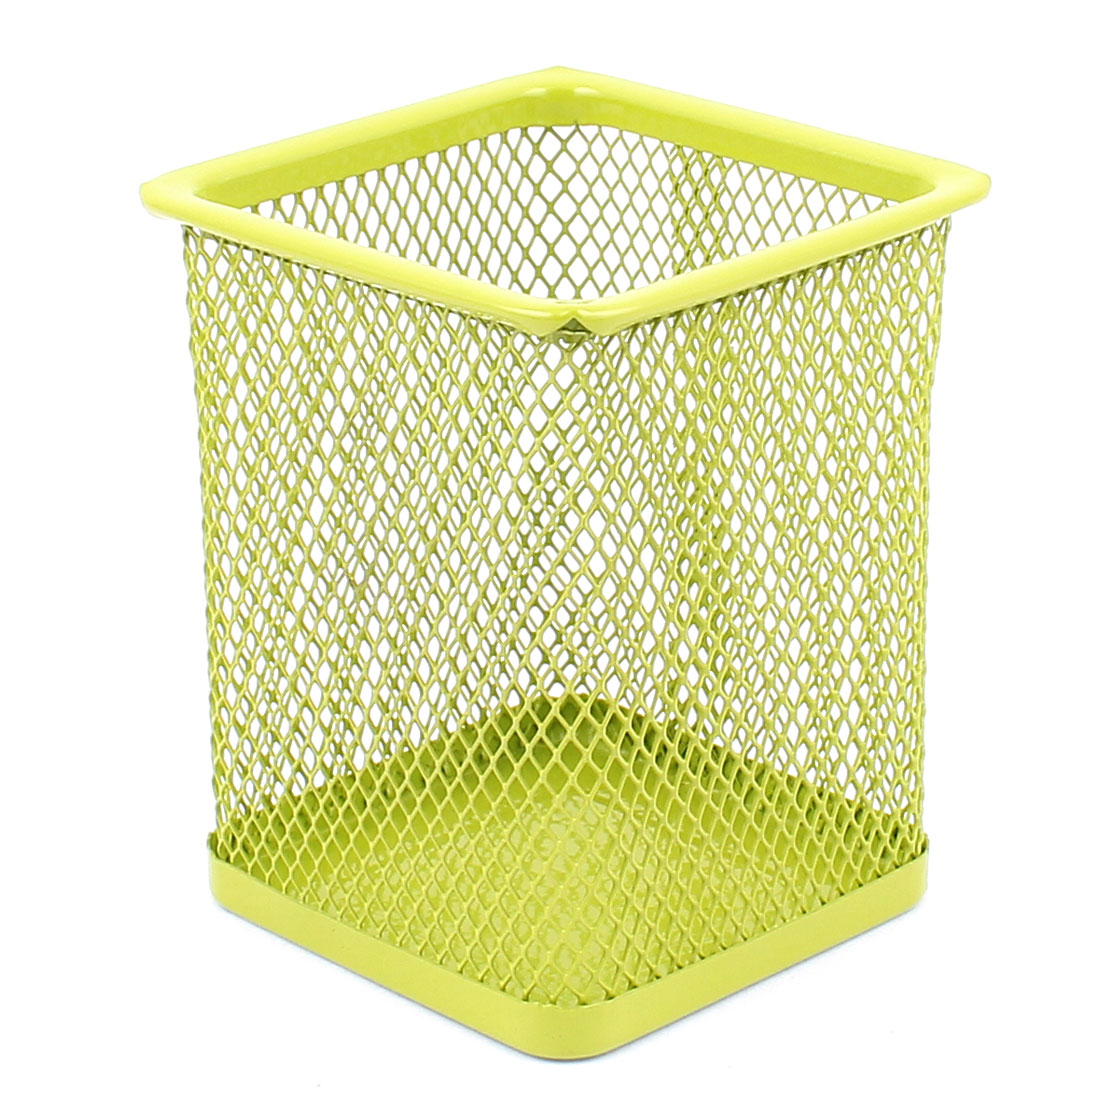 Office School Metal Mesh Style Pen Pencils Holder Container Organizer Case Green